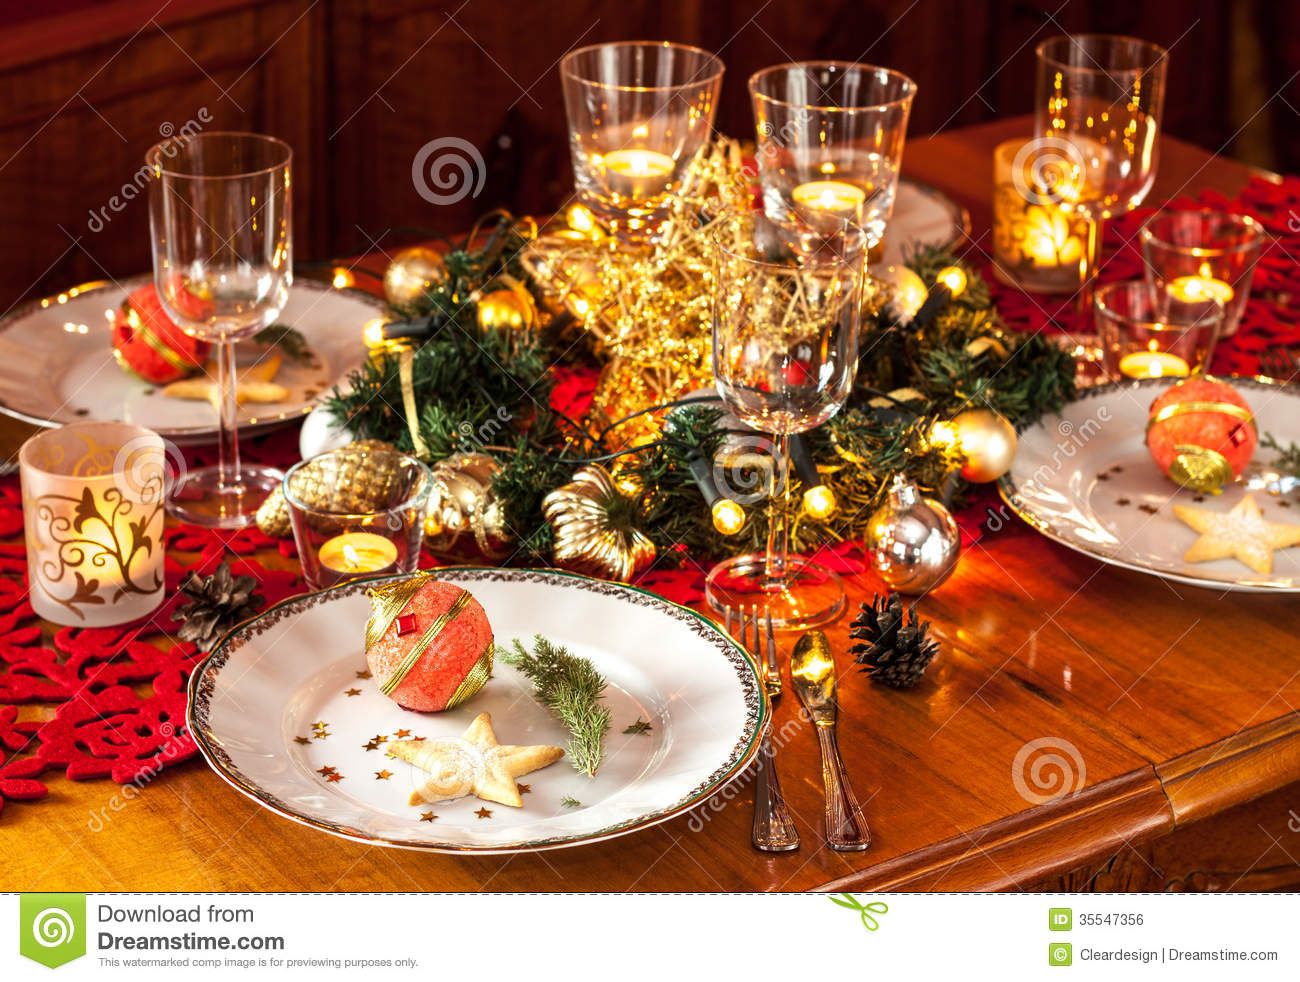 christmas eve dinner party table setting with decorations - Christmas Dinner Table Decorations